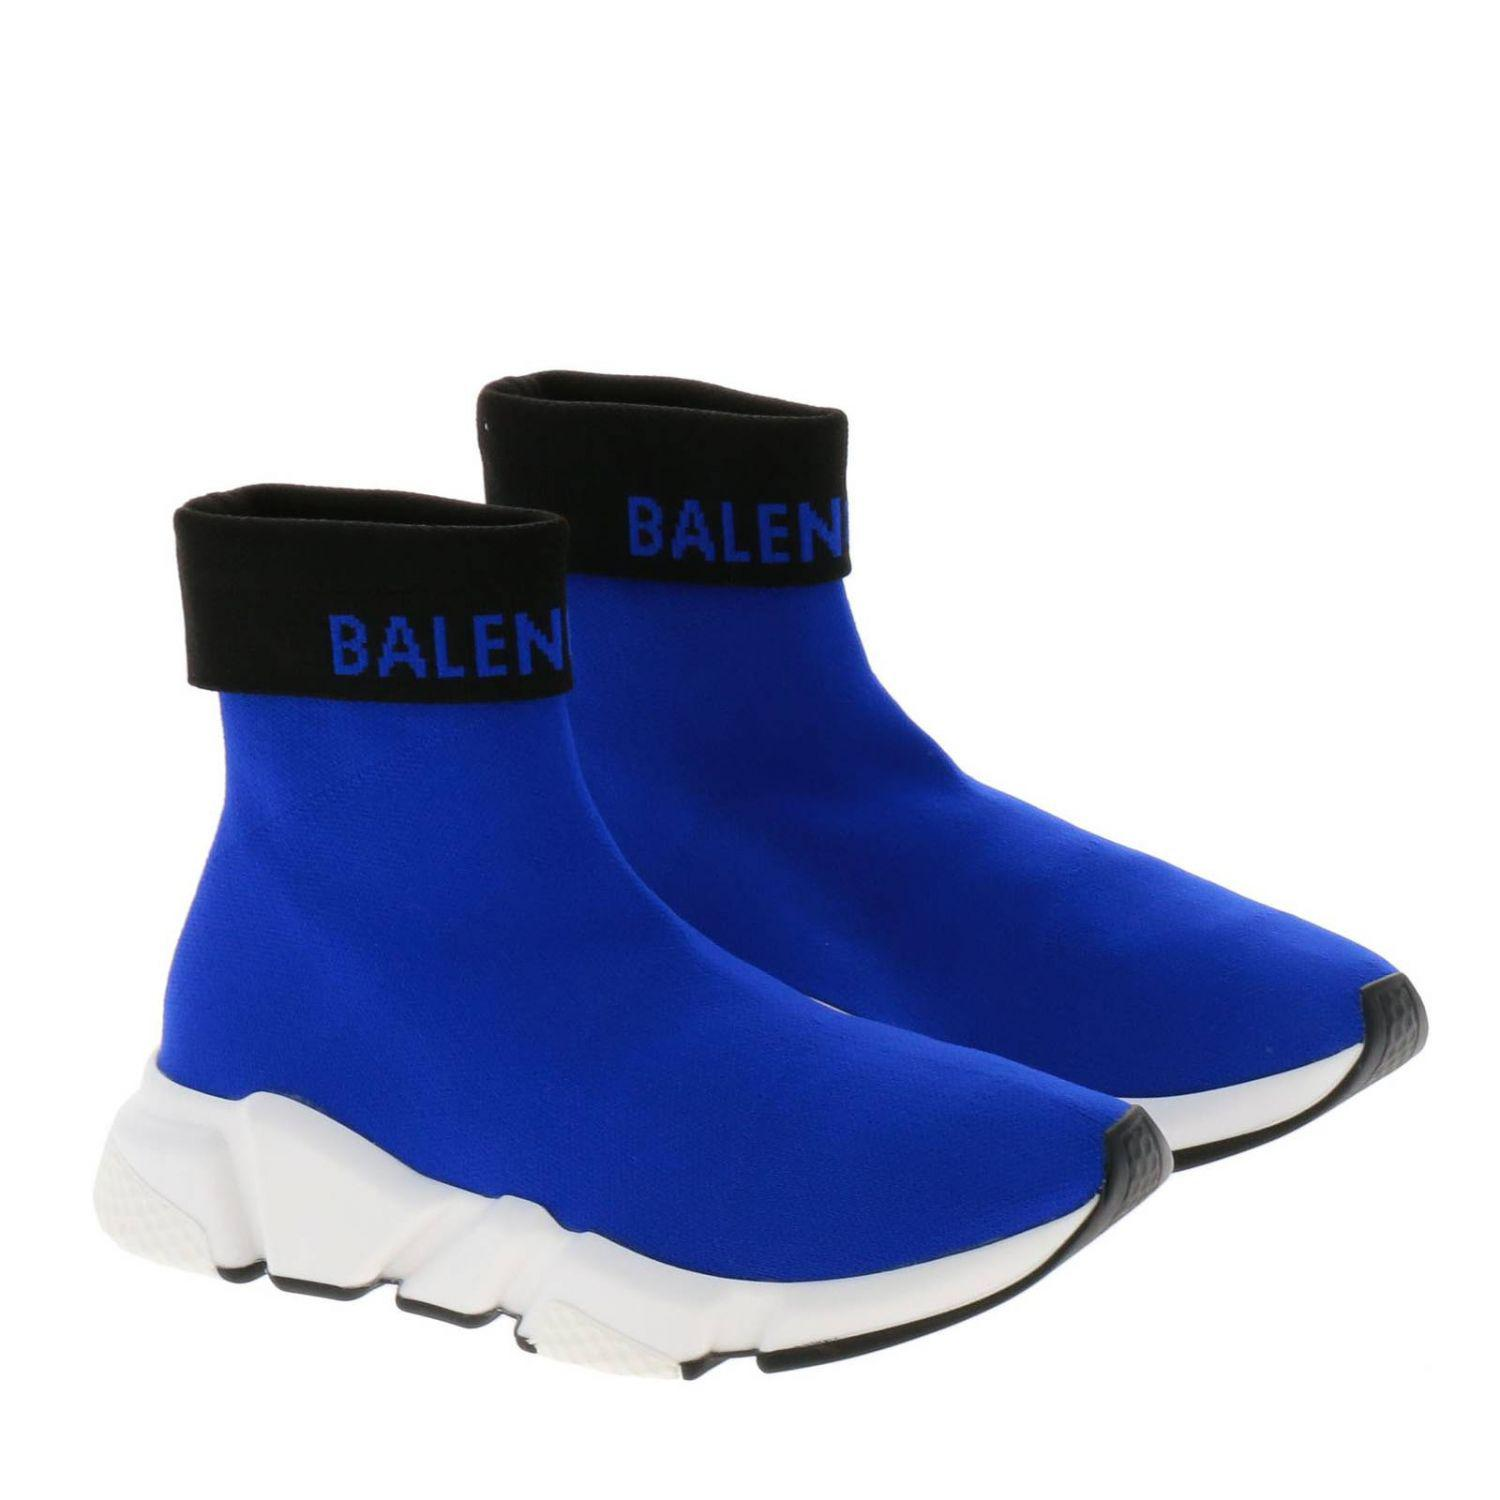 d7a7c62508d9 Balenciaga - Blue Sneakers Shoes Women - Lyst. View fullscreen